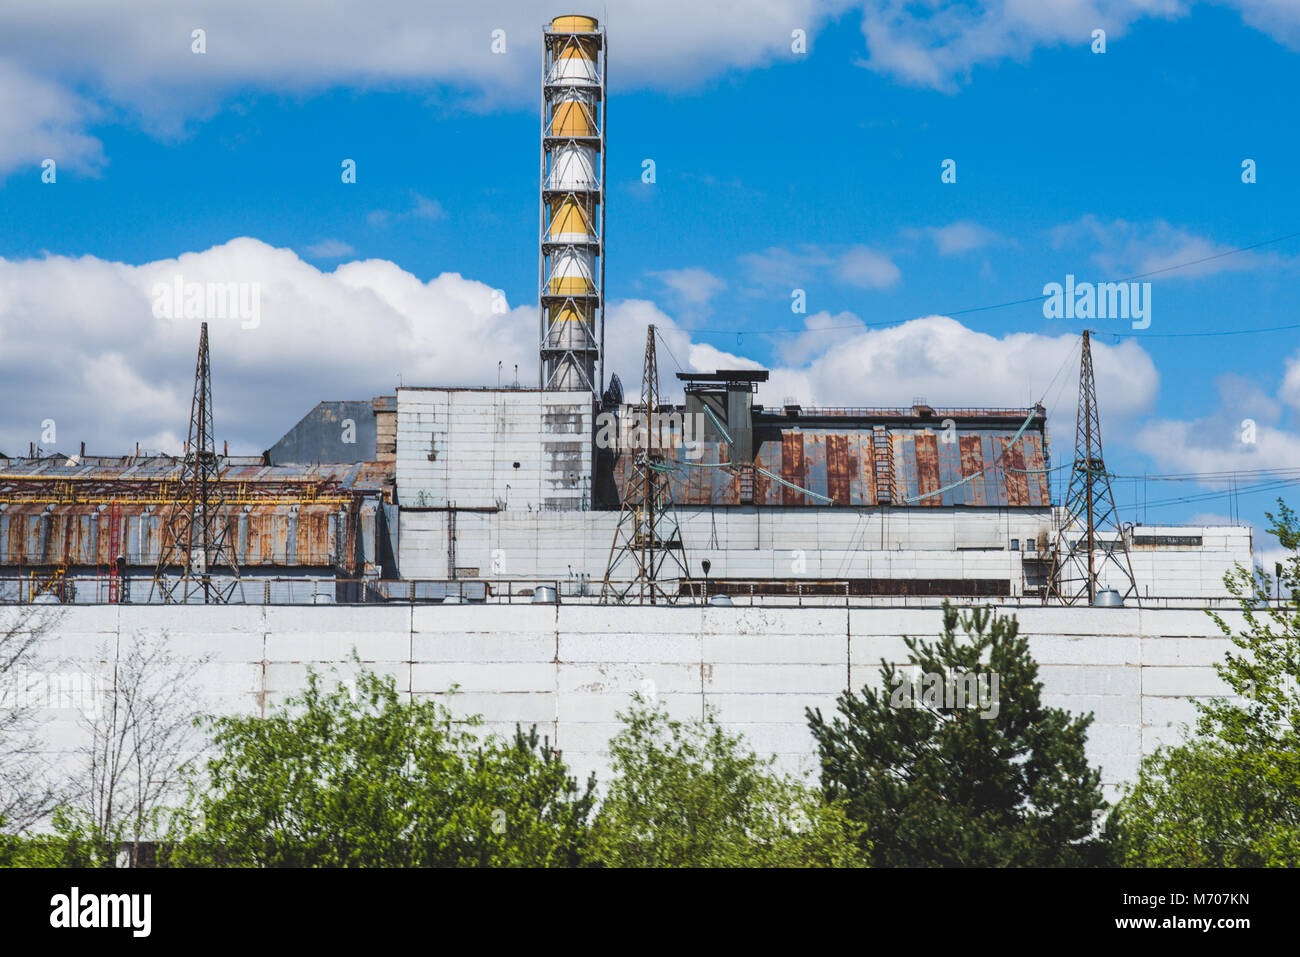 Ukraine, Chernobyl: Abandoned vehicles, houses and places from the evacuated Chernobyl exclusion zone. Photo: Alessandro - Stock Image